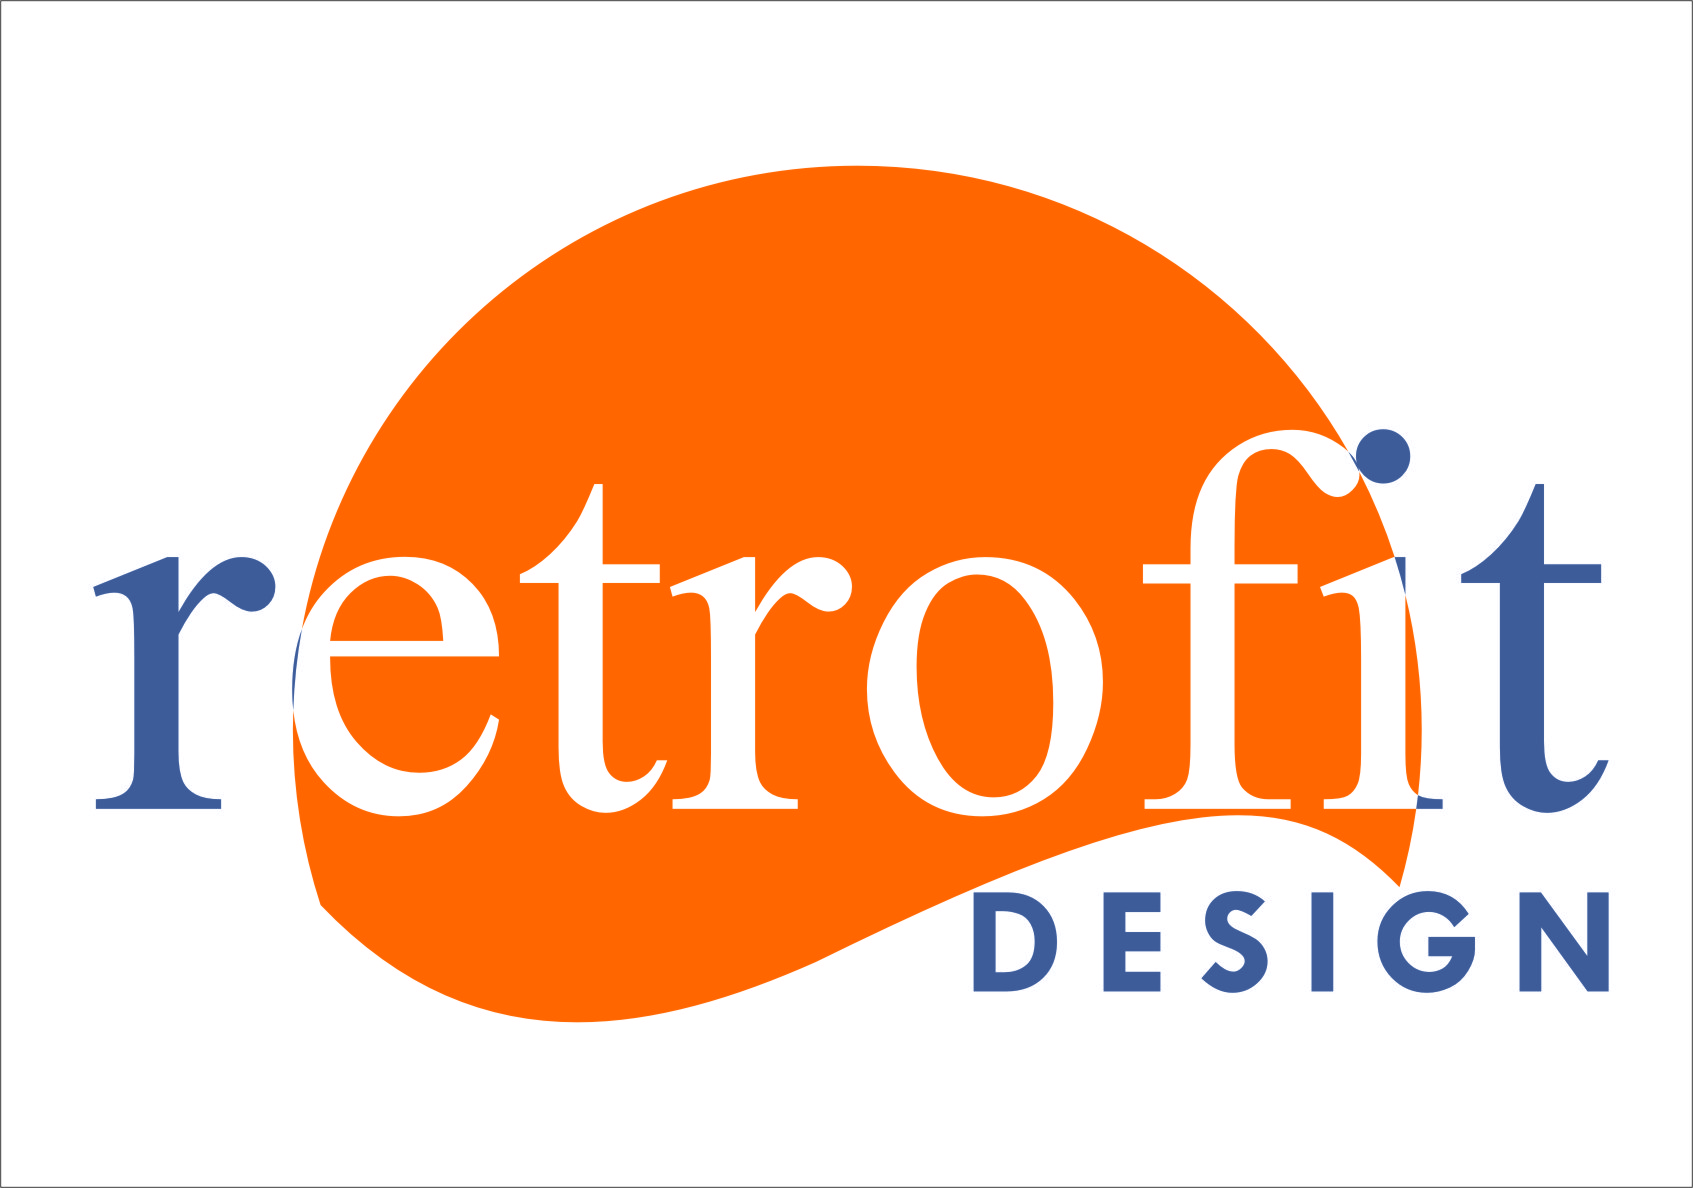 Logo Design by Ngepet_art - Entry No. 148 in the Logo Design Contest Inspiring Logo Design for retrofit design.